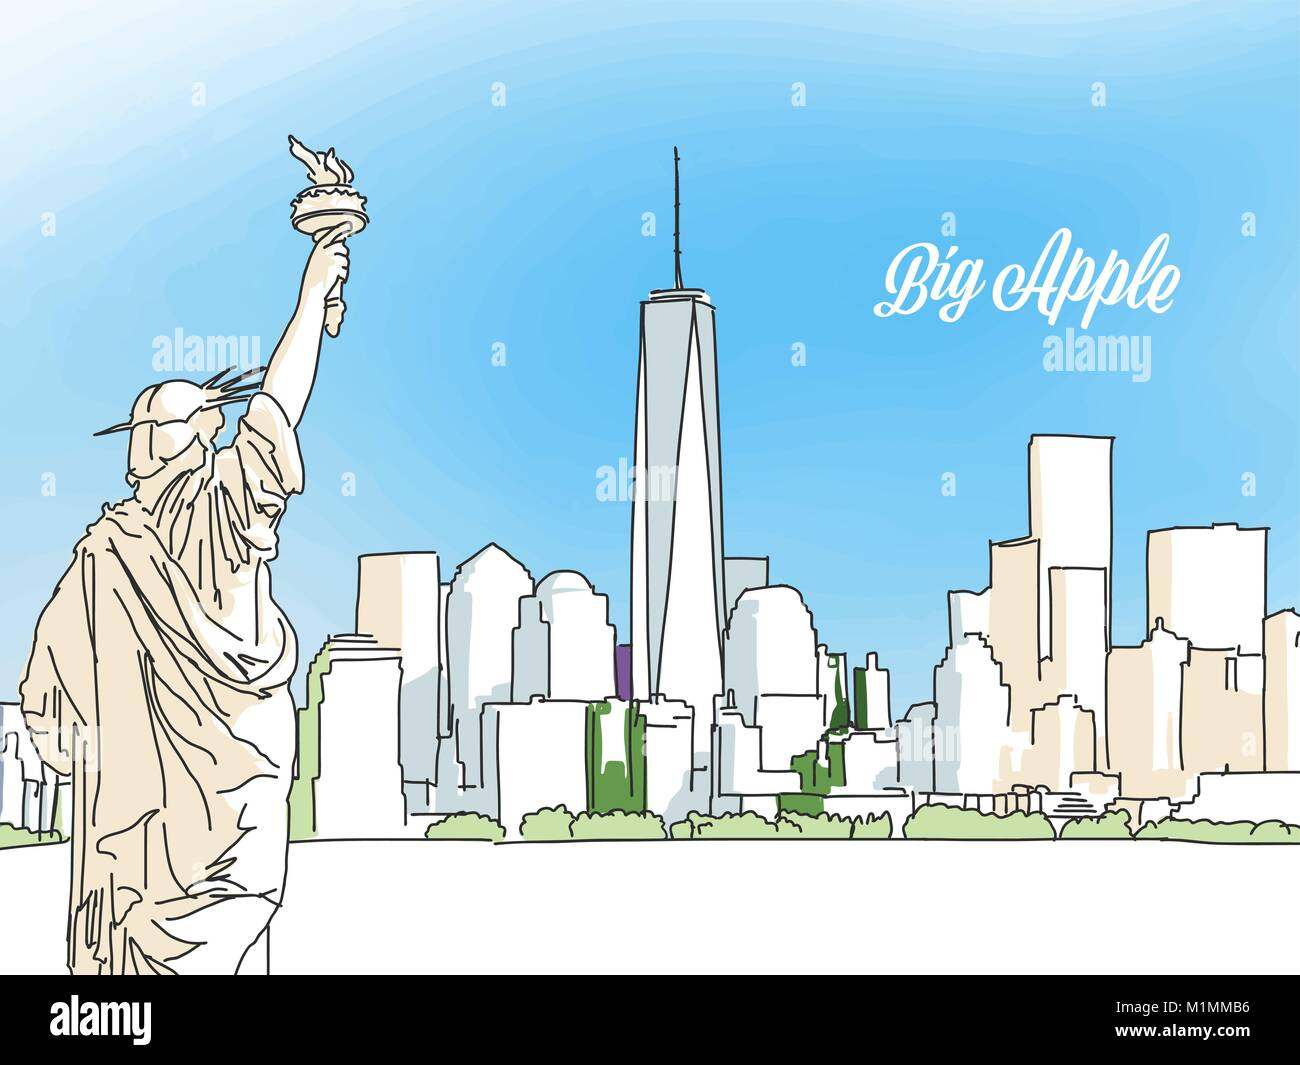 New york big apple panorama banner layout for greeting card and new york big apple panorama banner layout for greeting card and banner design marketing sketch m4hsunfo